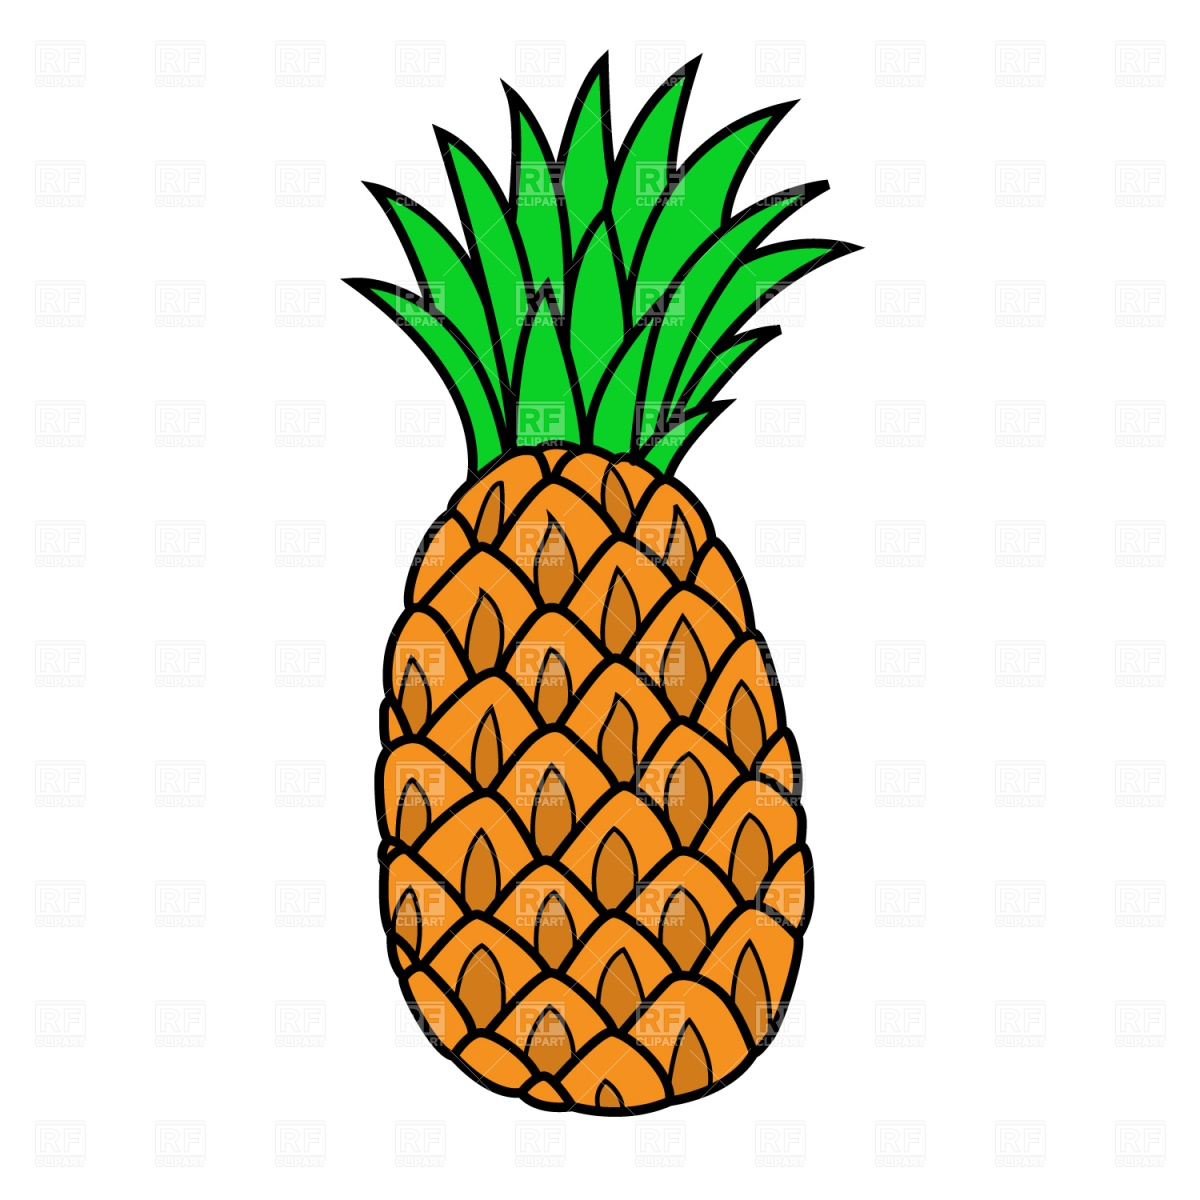 Pineapple clipart - Clipground